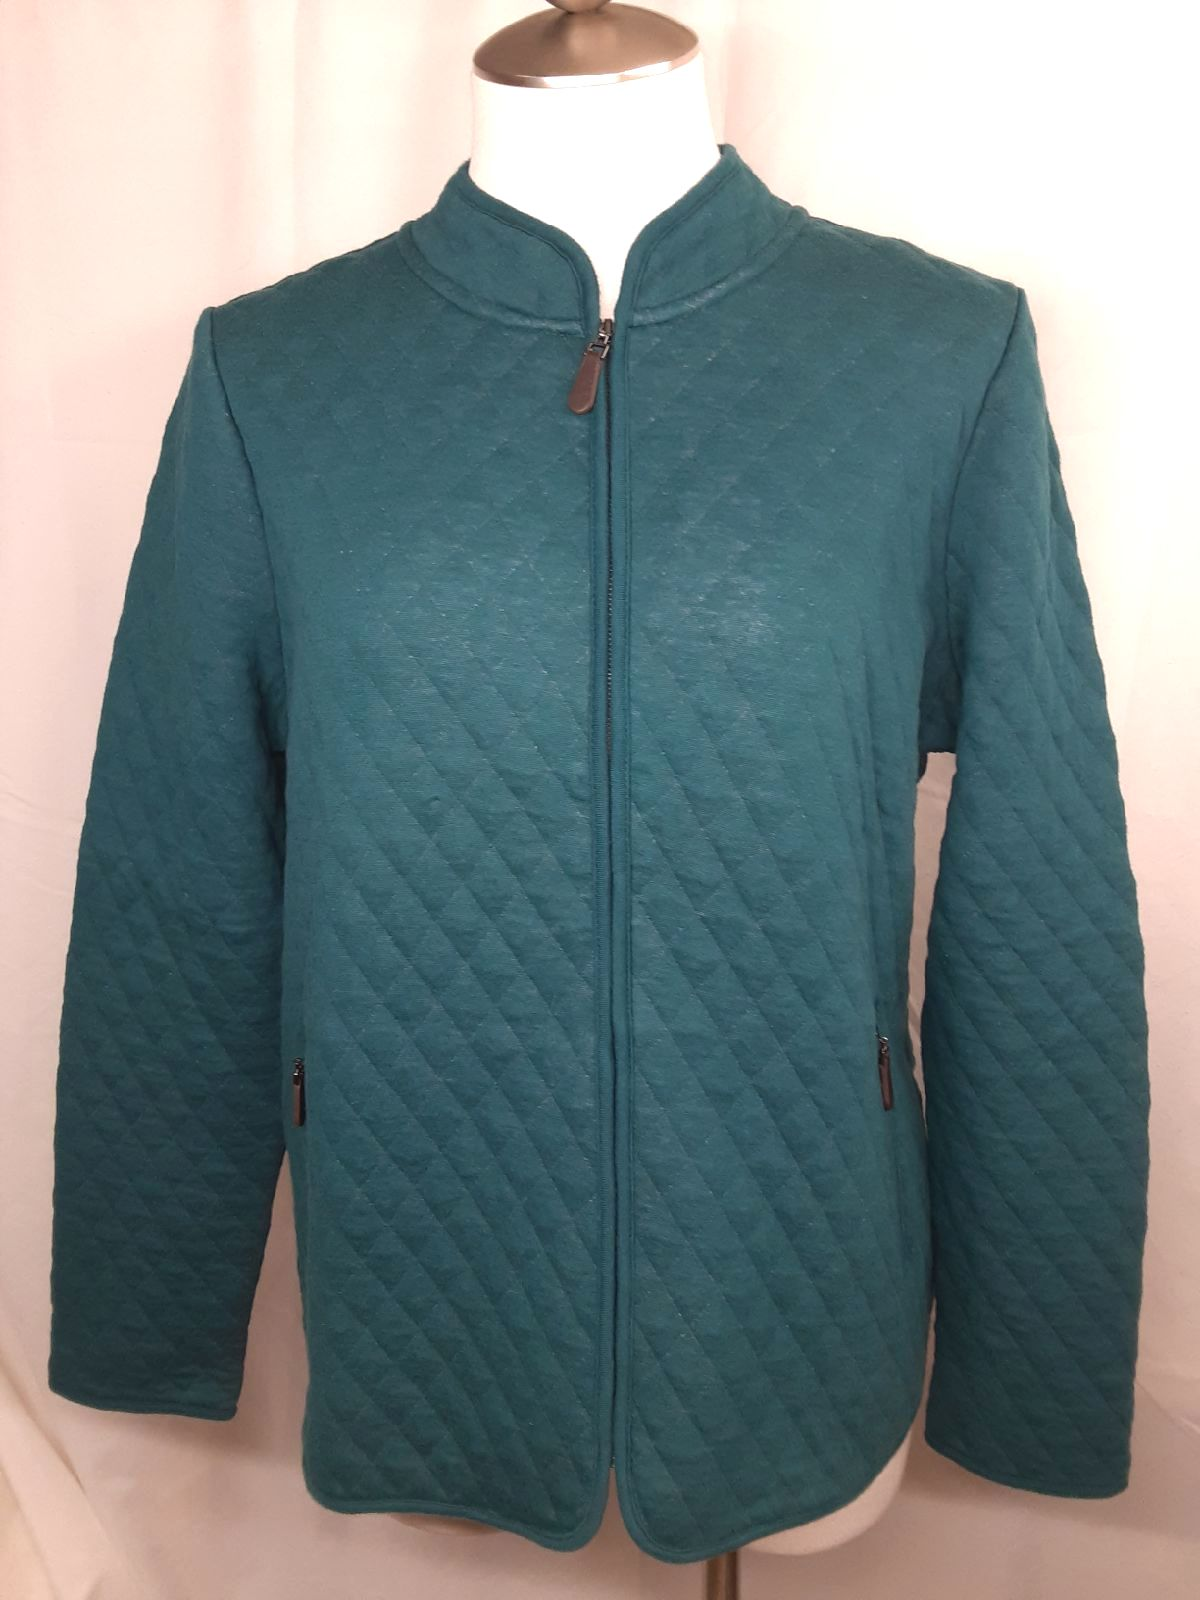 Talbots Quilted Knit Jacket